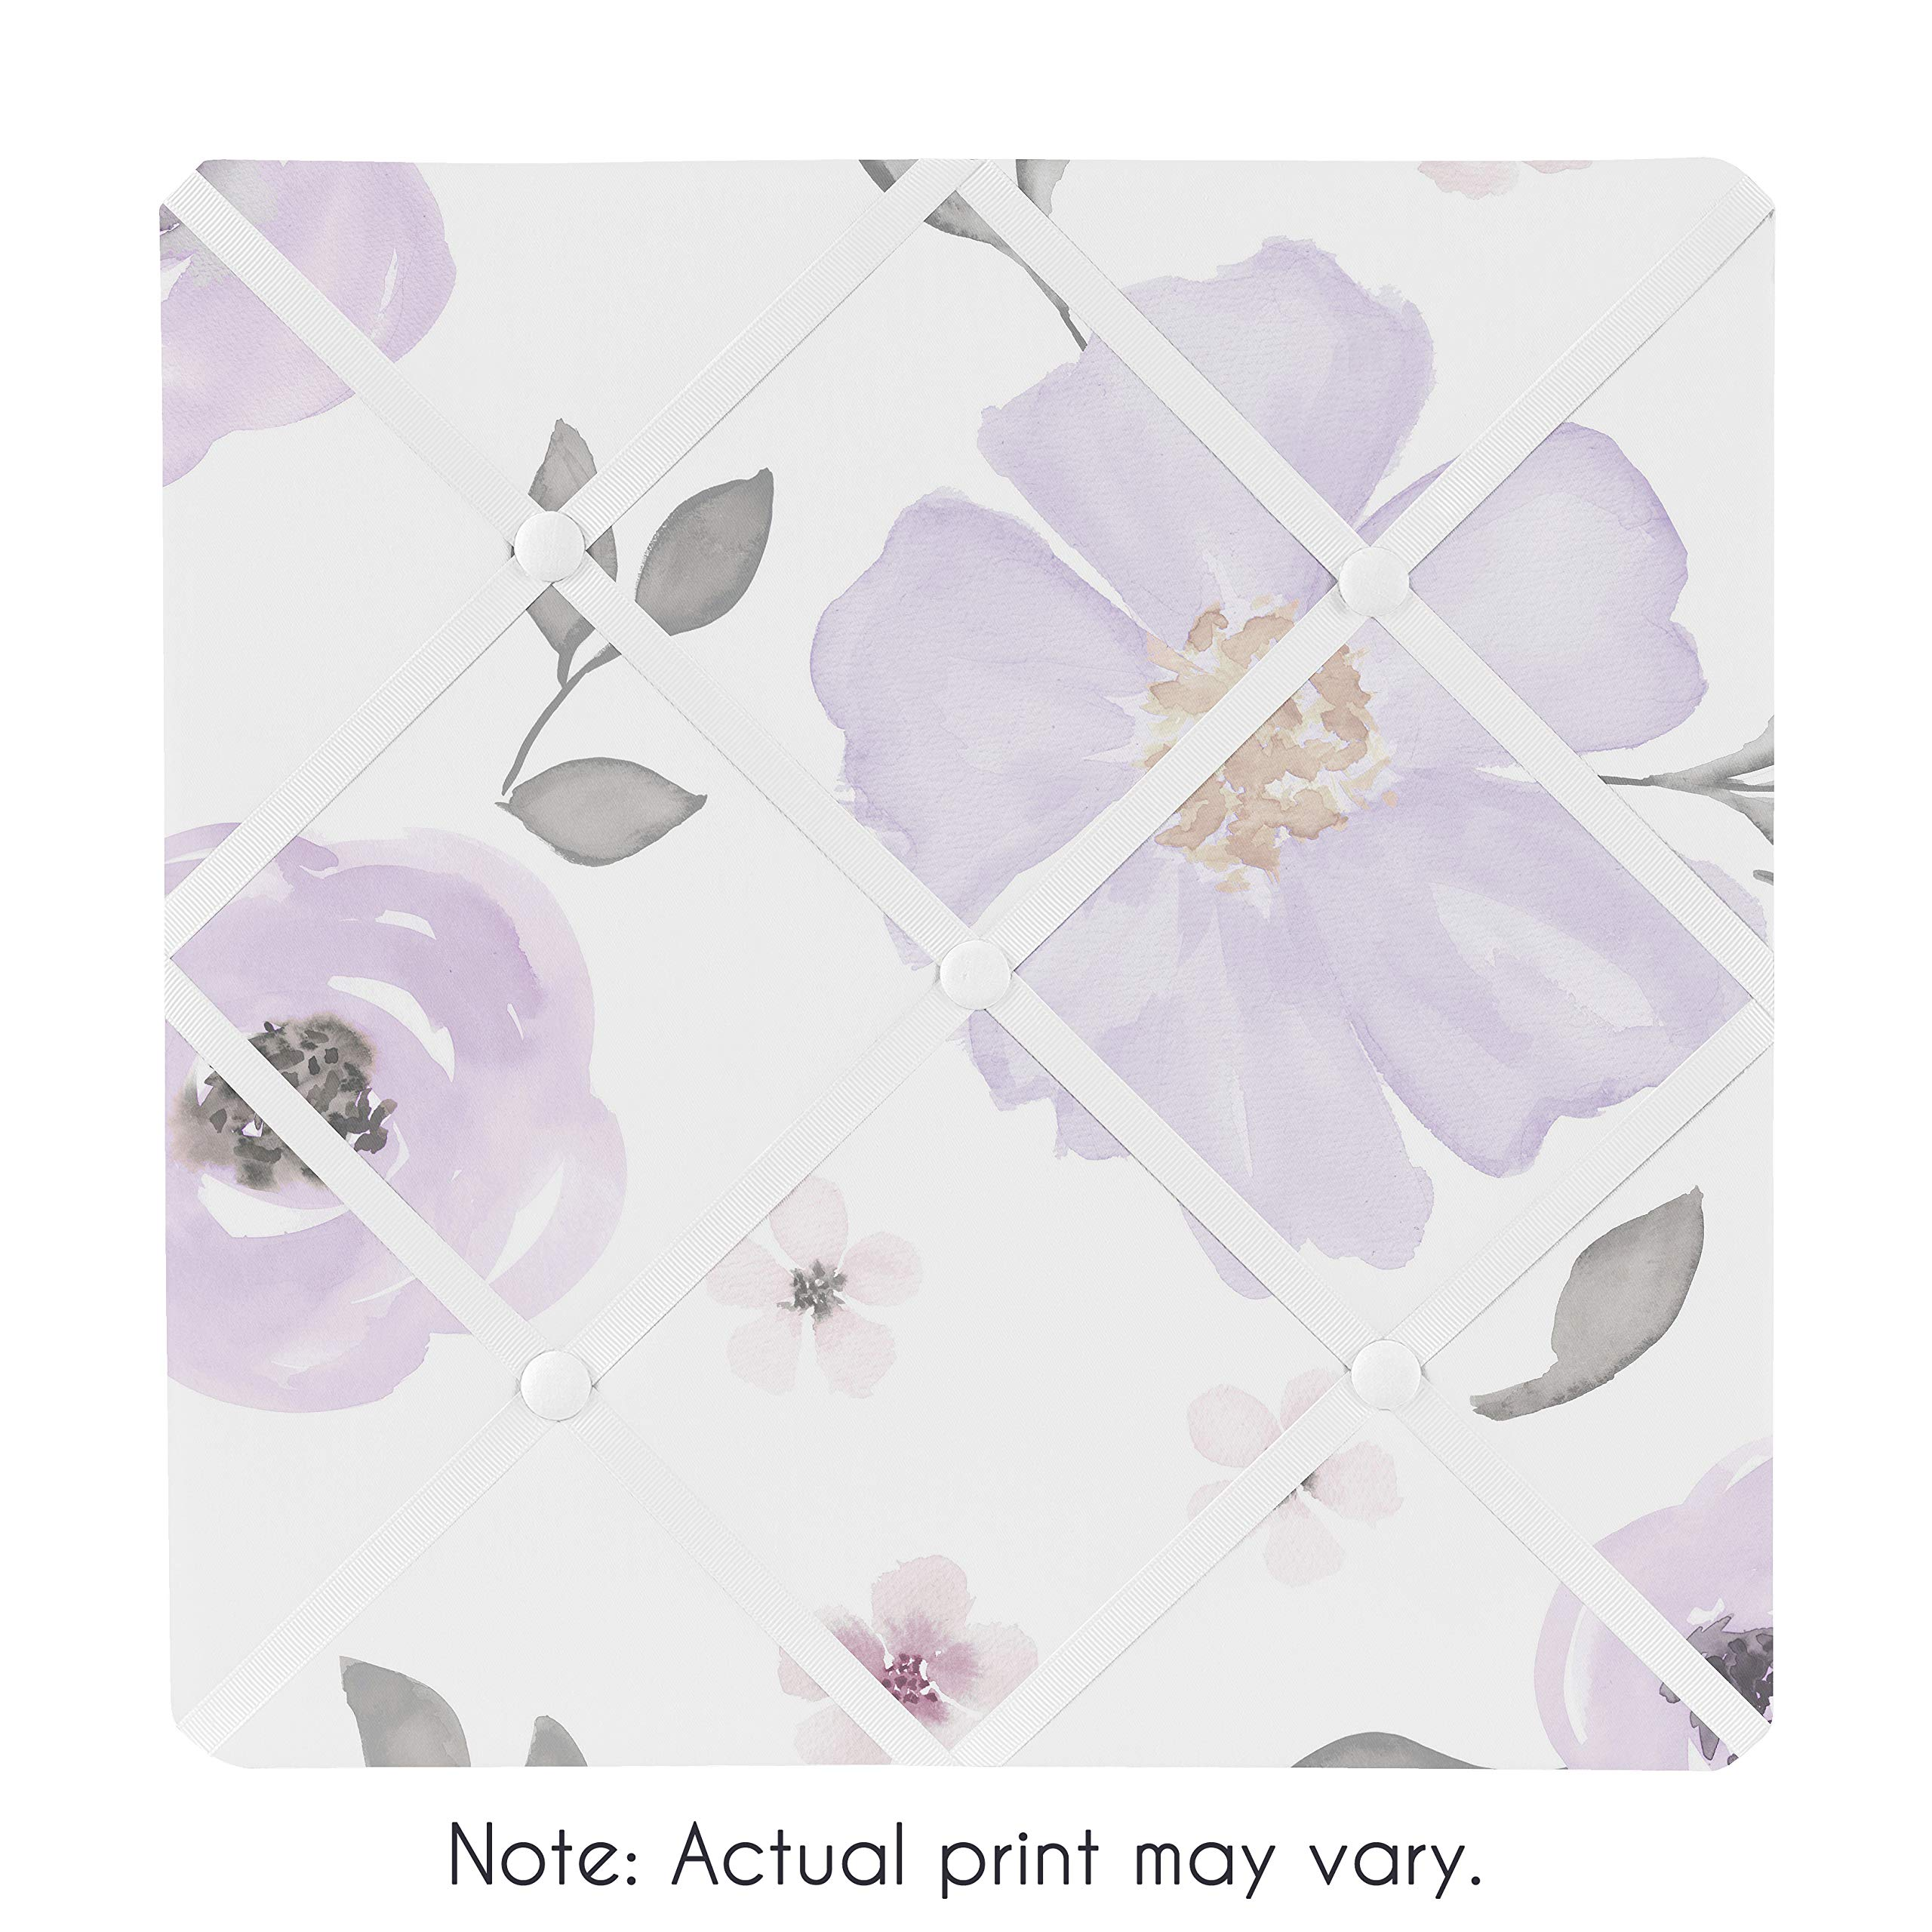 Sweet Jojo Designs Lavender Purple, Pink, Grey and White Fabric Memory Memo Photo Bulletin Board for Watercolor Floral Collection - Rose Flower by Sweet Jojo Designs